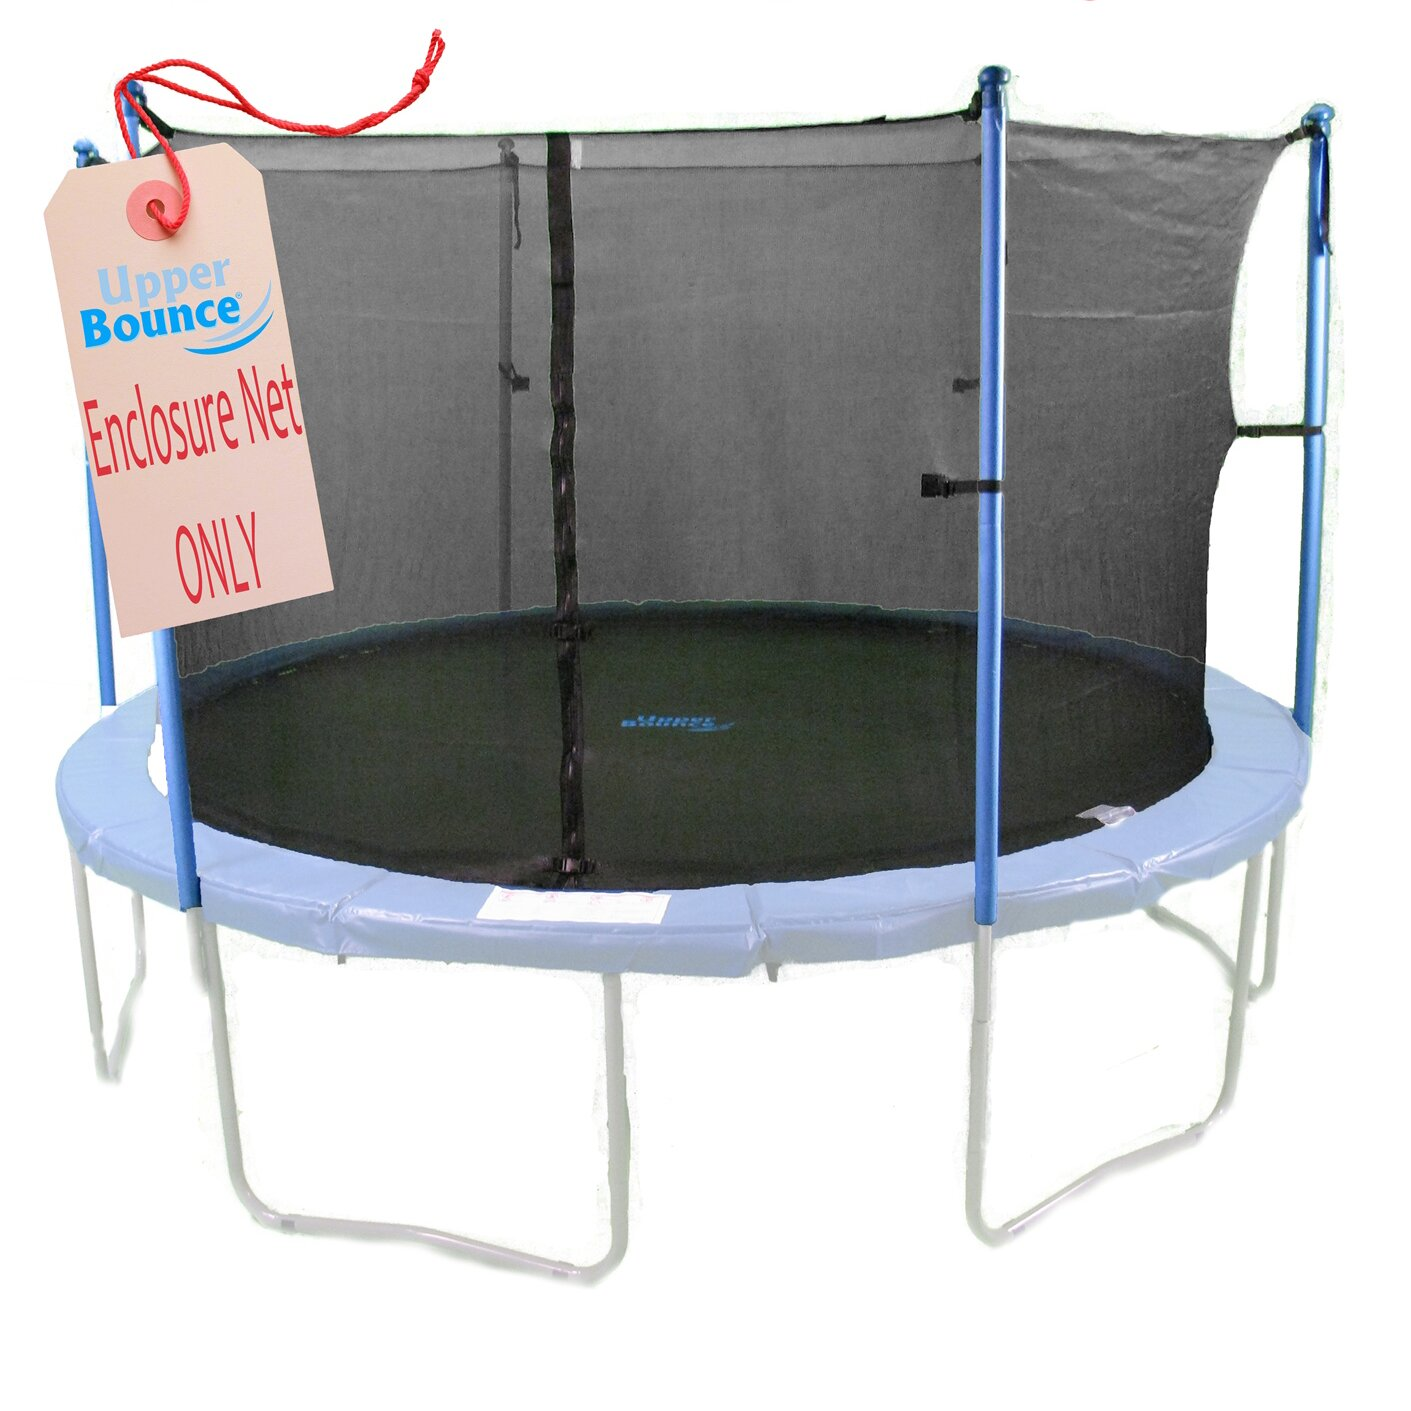 Upper Bounce 12' Round Trampoline Net Using 4 Poles Or 2